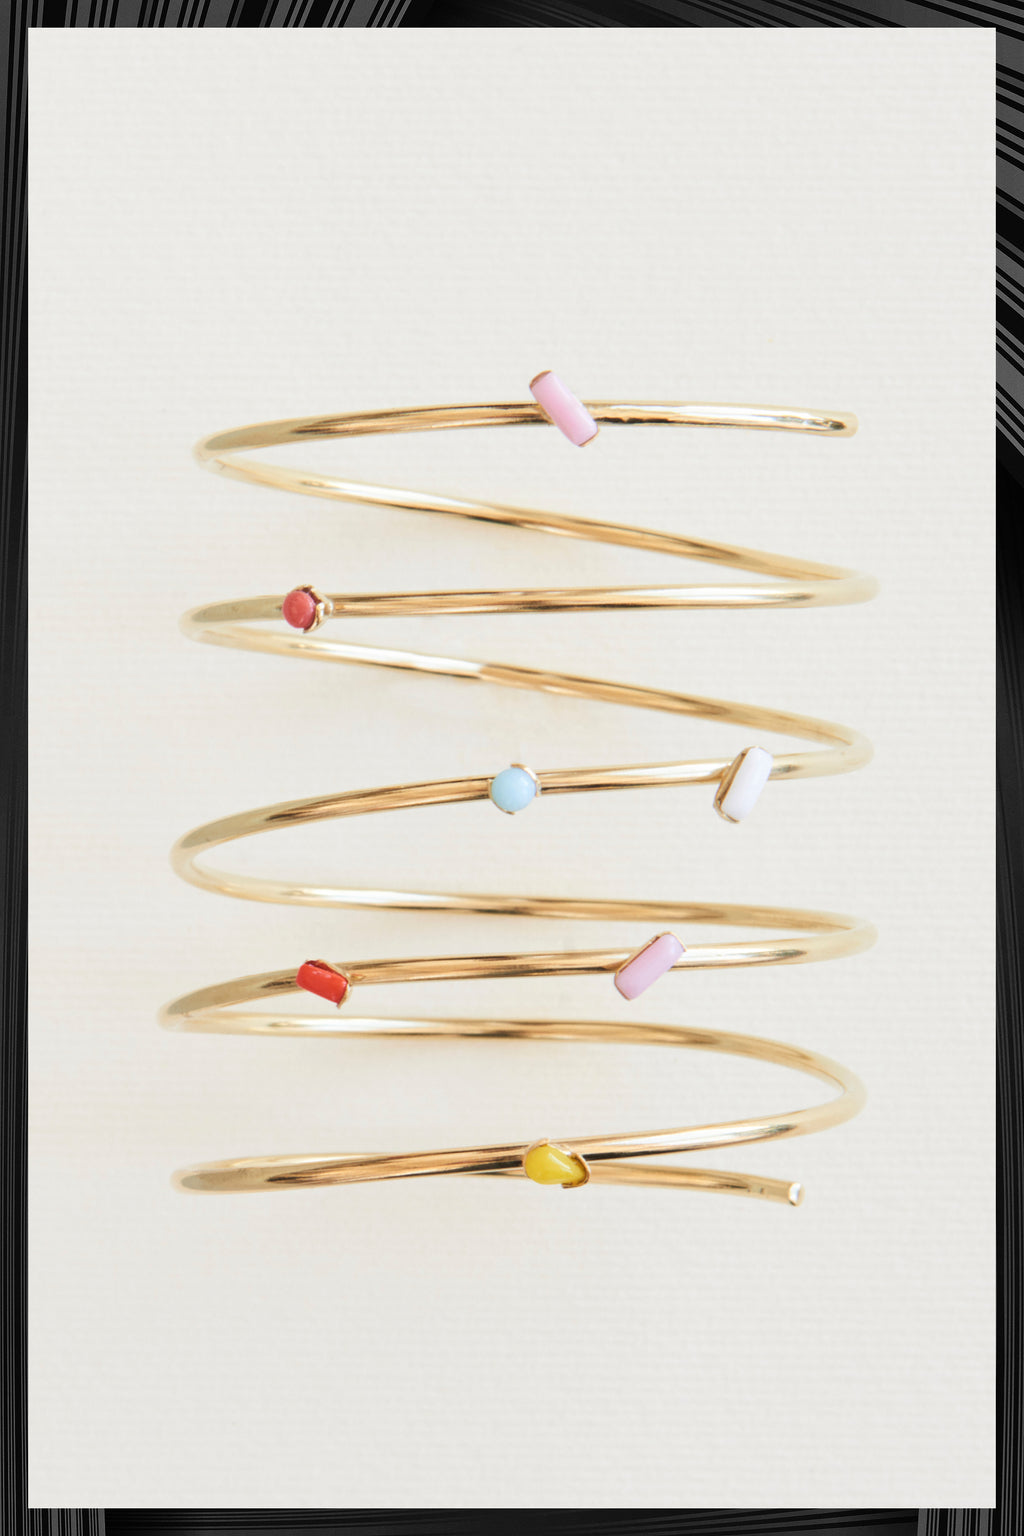 Six Spiral Bracelet | Free Delivery - 2-3 Weeks Shipping